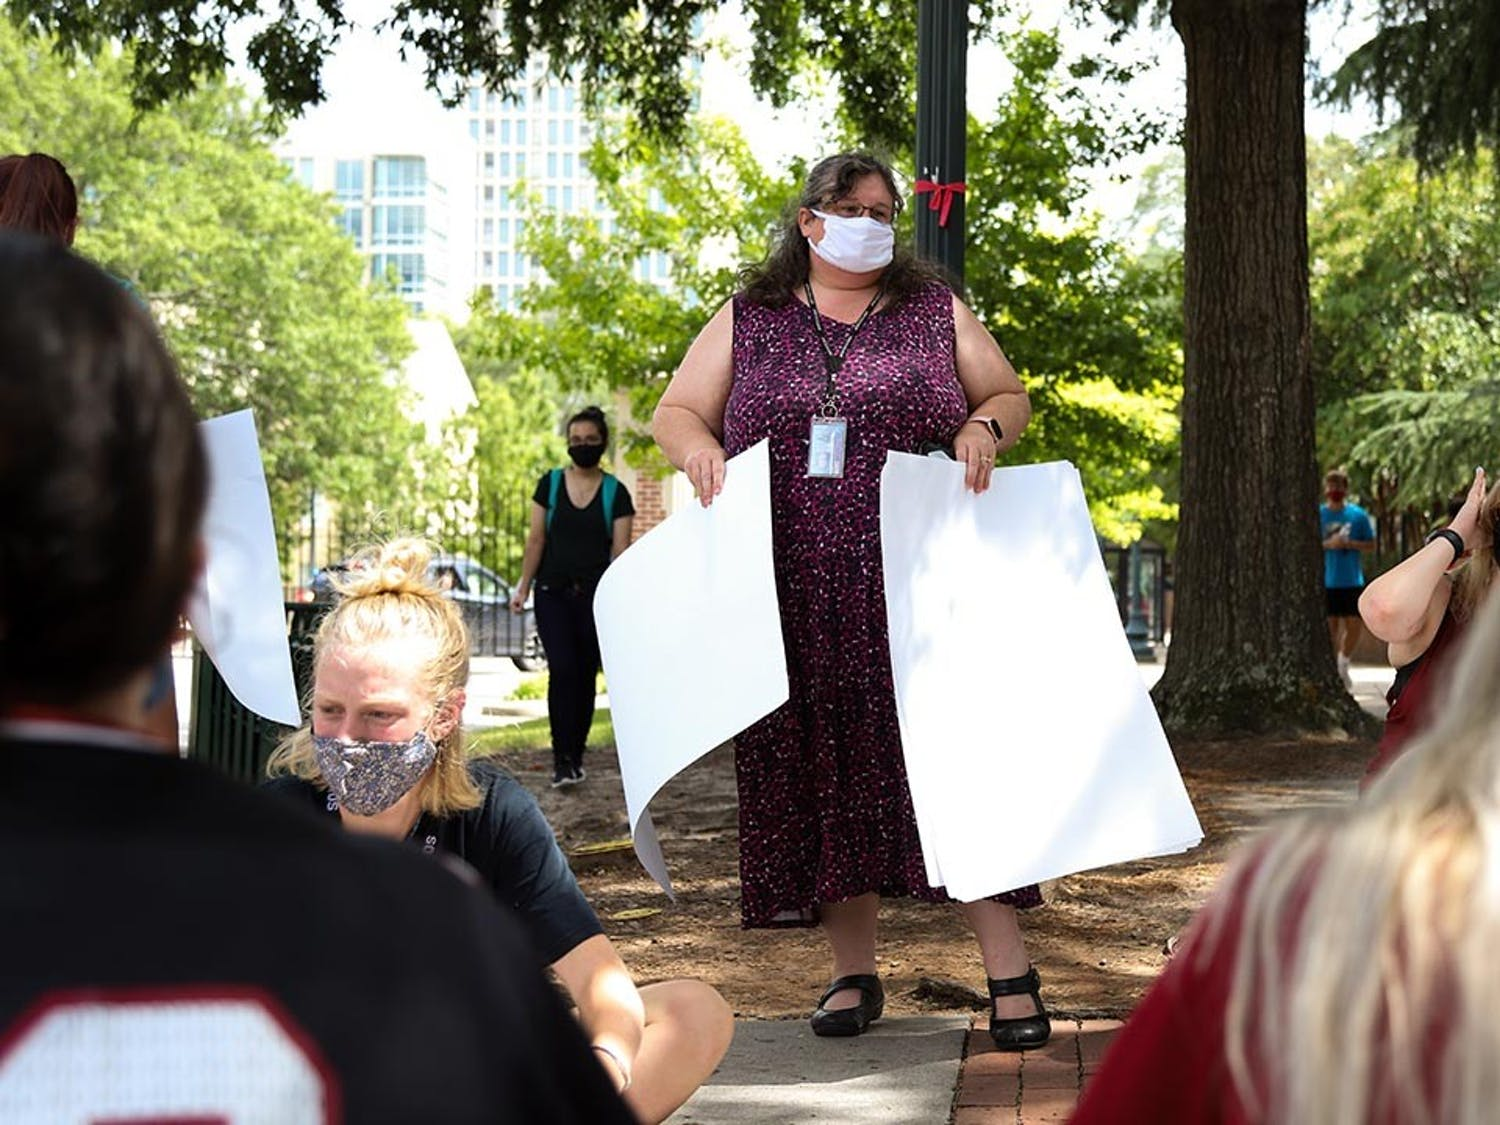 A staff member at the University of South Carolina hands out markers and paper to allow protesting students to make signs to combat Jim Gilles.